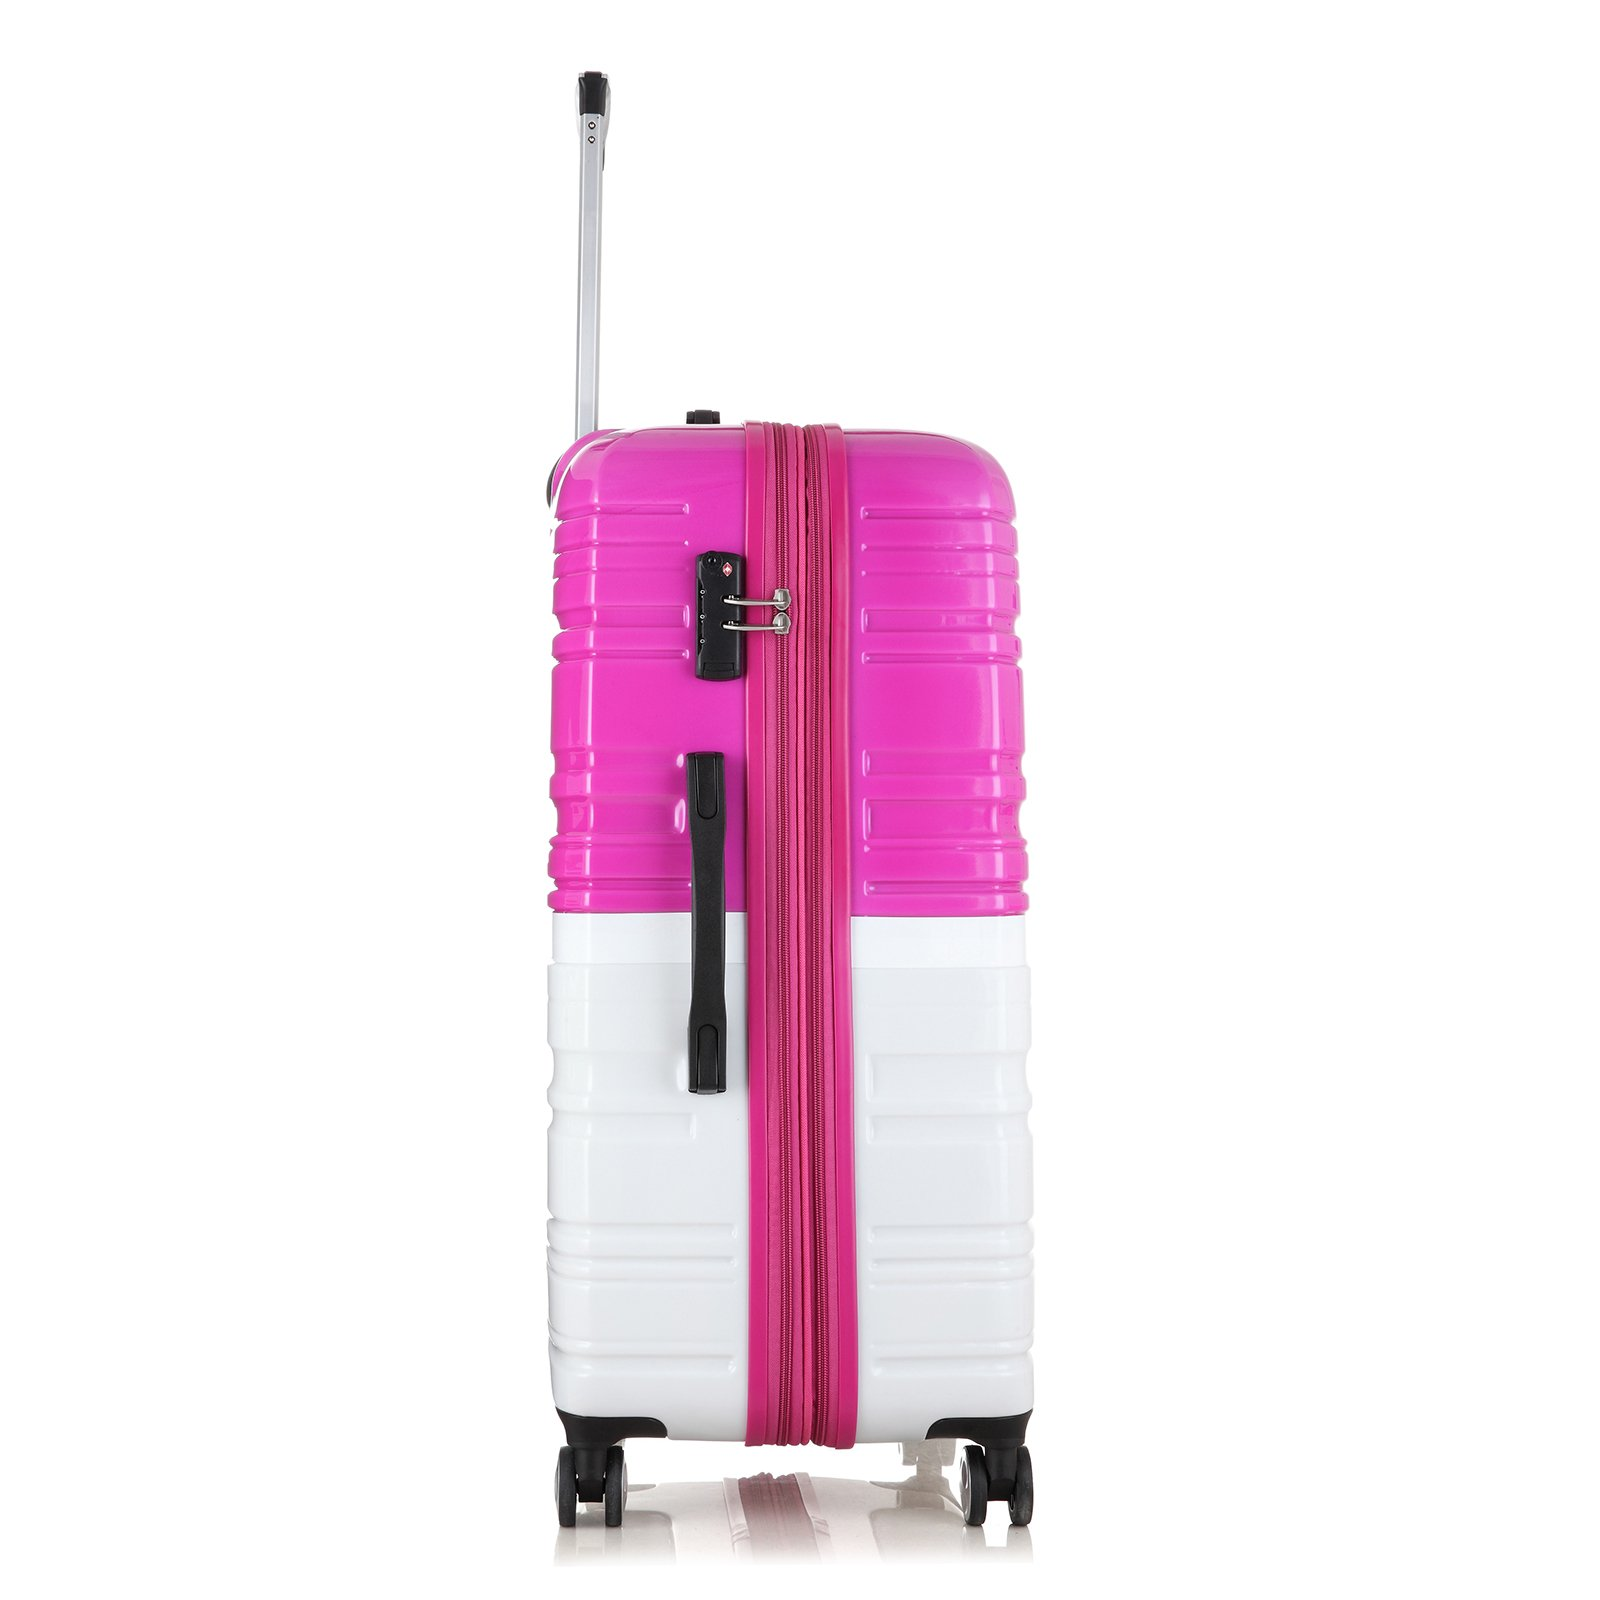 2 Pack Love Box[Boy and girl,daddy and boy,mommy and girl] 20''-28'' Luggage 360° Spinner Wheels Trolley Suitcase TSALock Travel Carryon Bag Hardside Travelhouse (Pink+White) by Chiuer (Image #4)